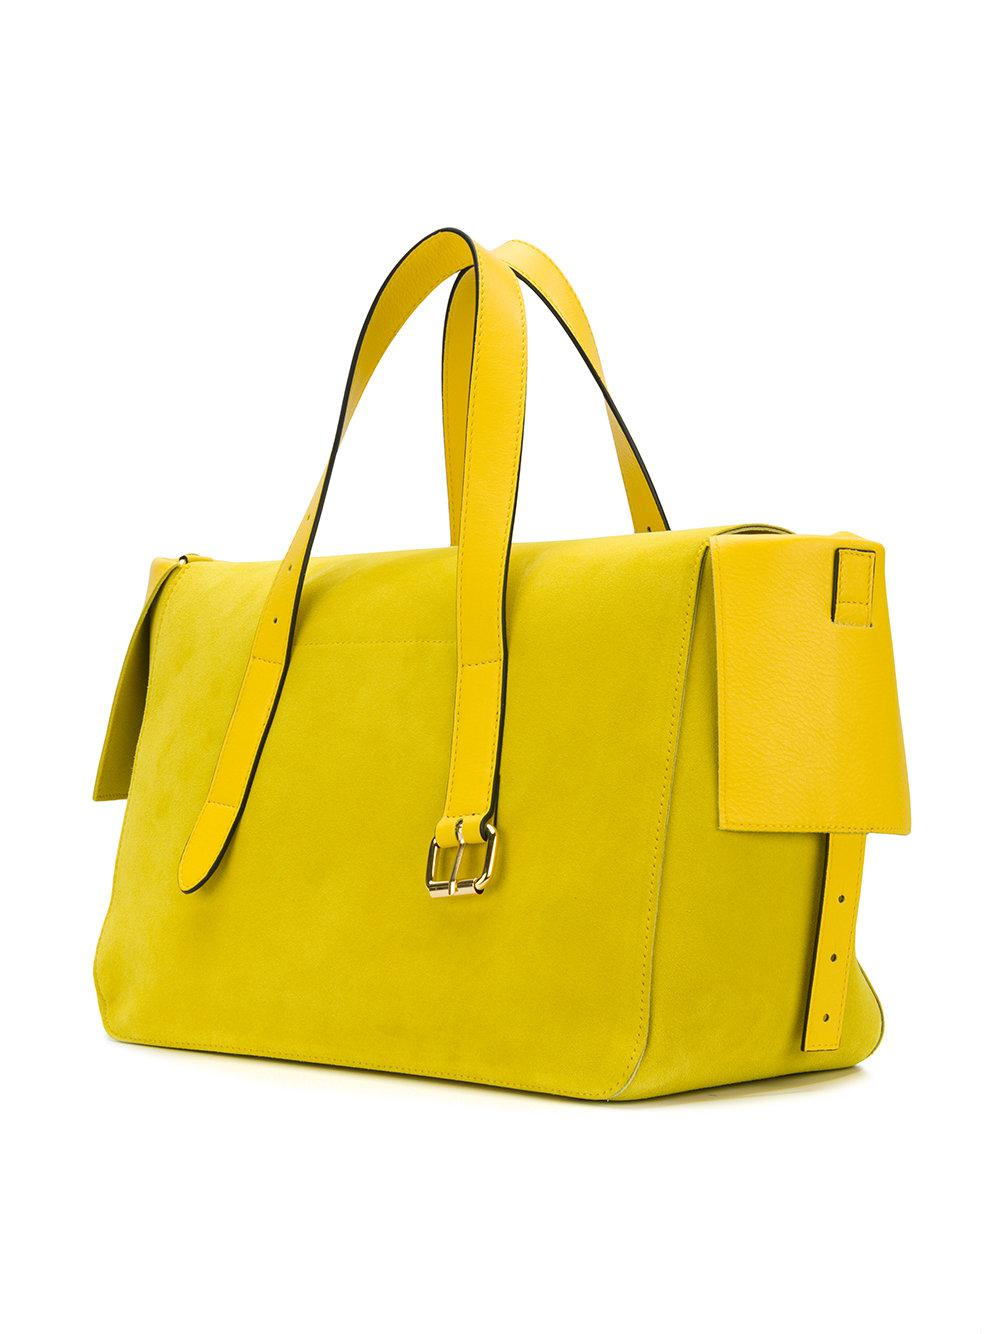 JW Anderson Leather Tool Tote Bag in Yellow & Orange (Yellow)